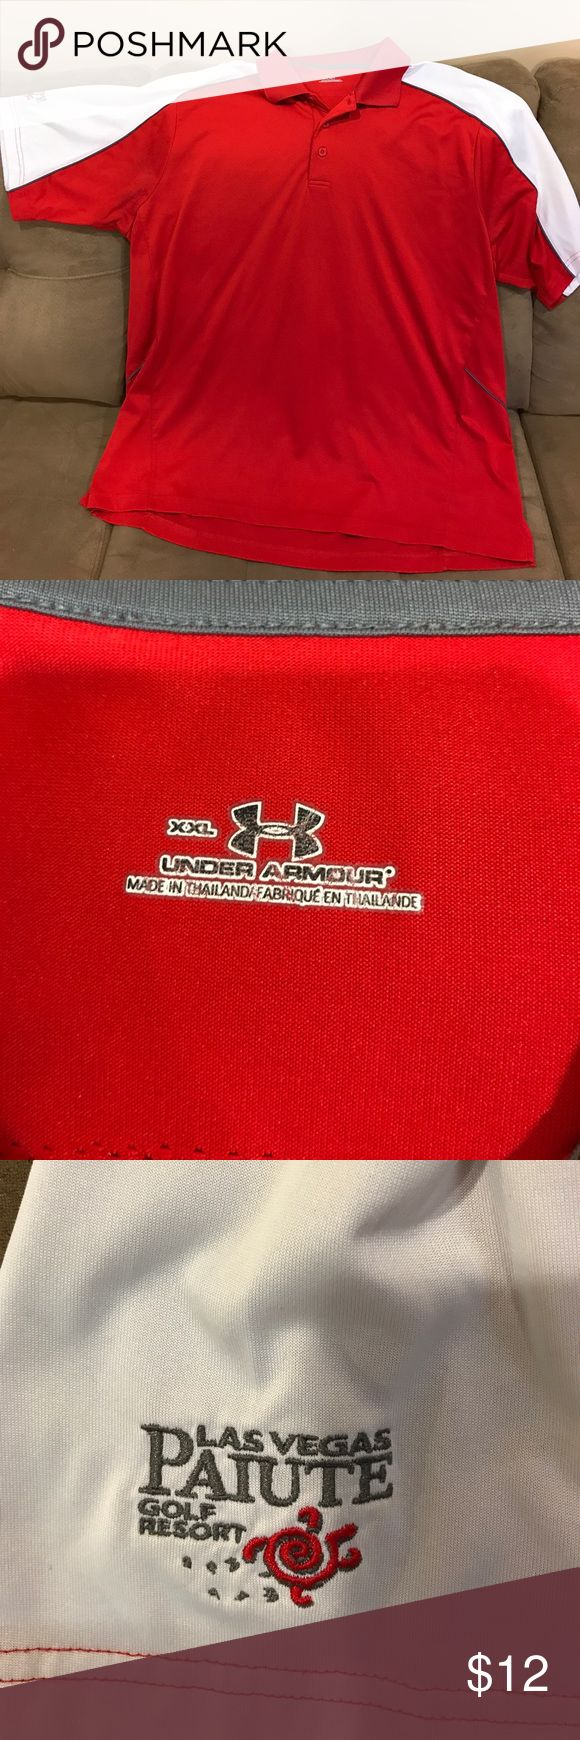 Under Armour XXL shirt Has Las Vegas Paiute Golf Resort logo on one arm.  Comes from a smoke free home.  20% discount when bundling items. Under Armour Shirts